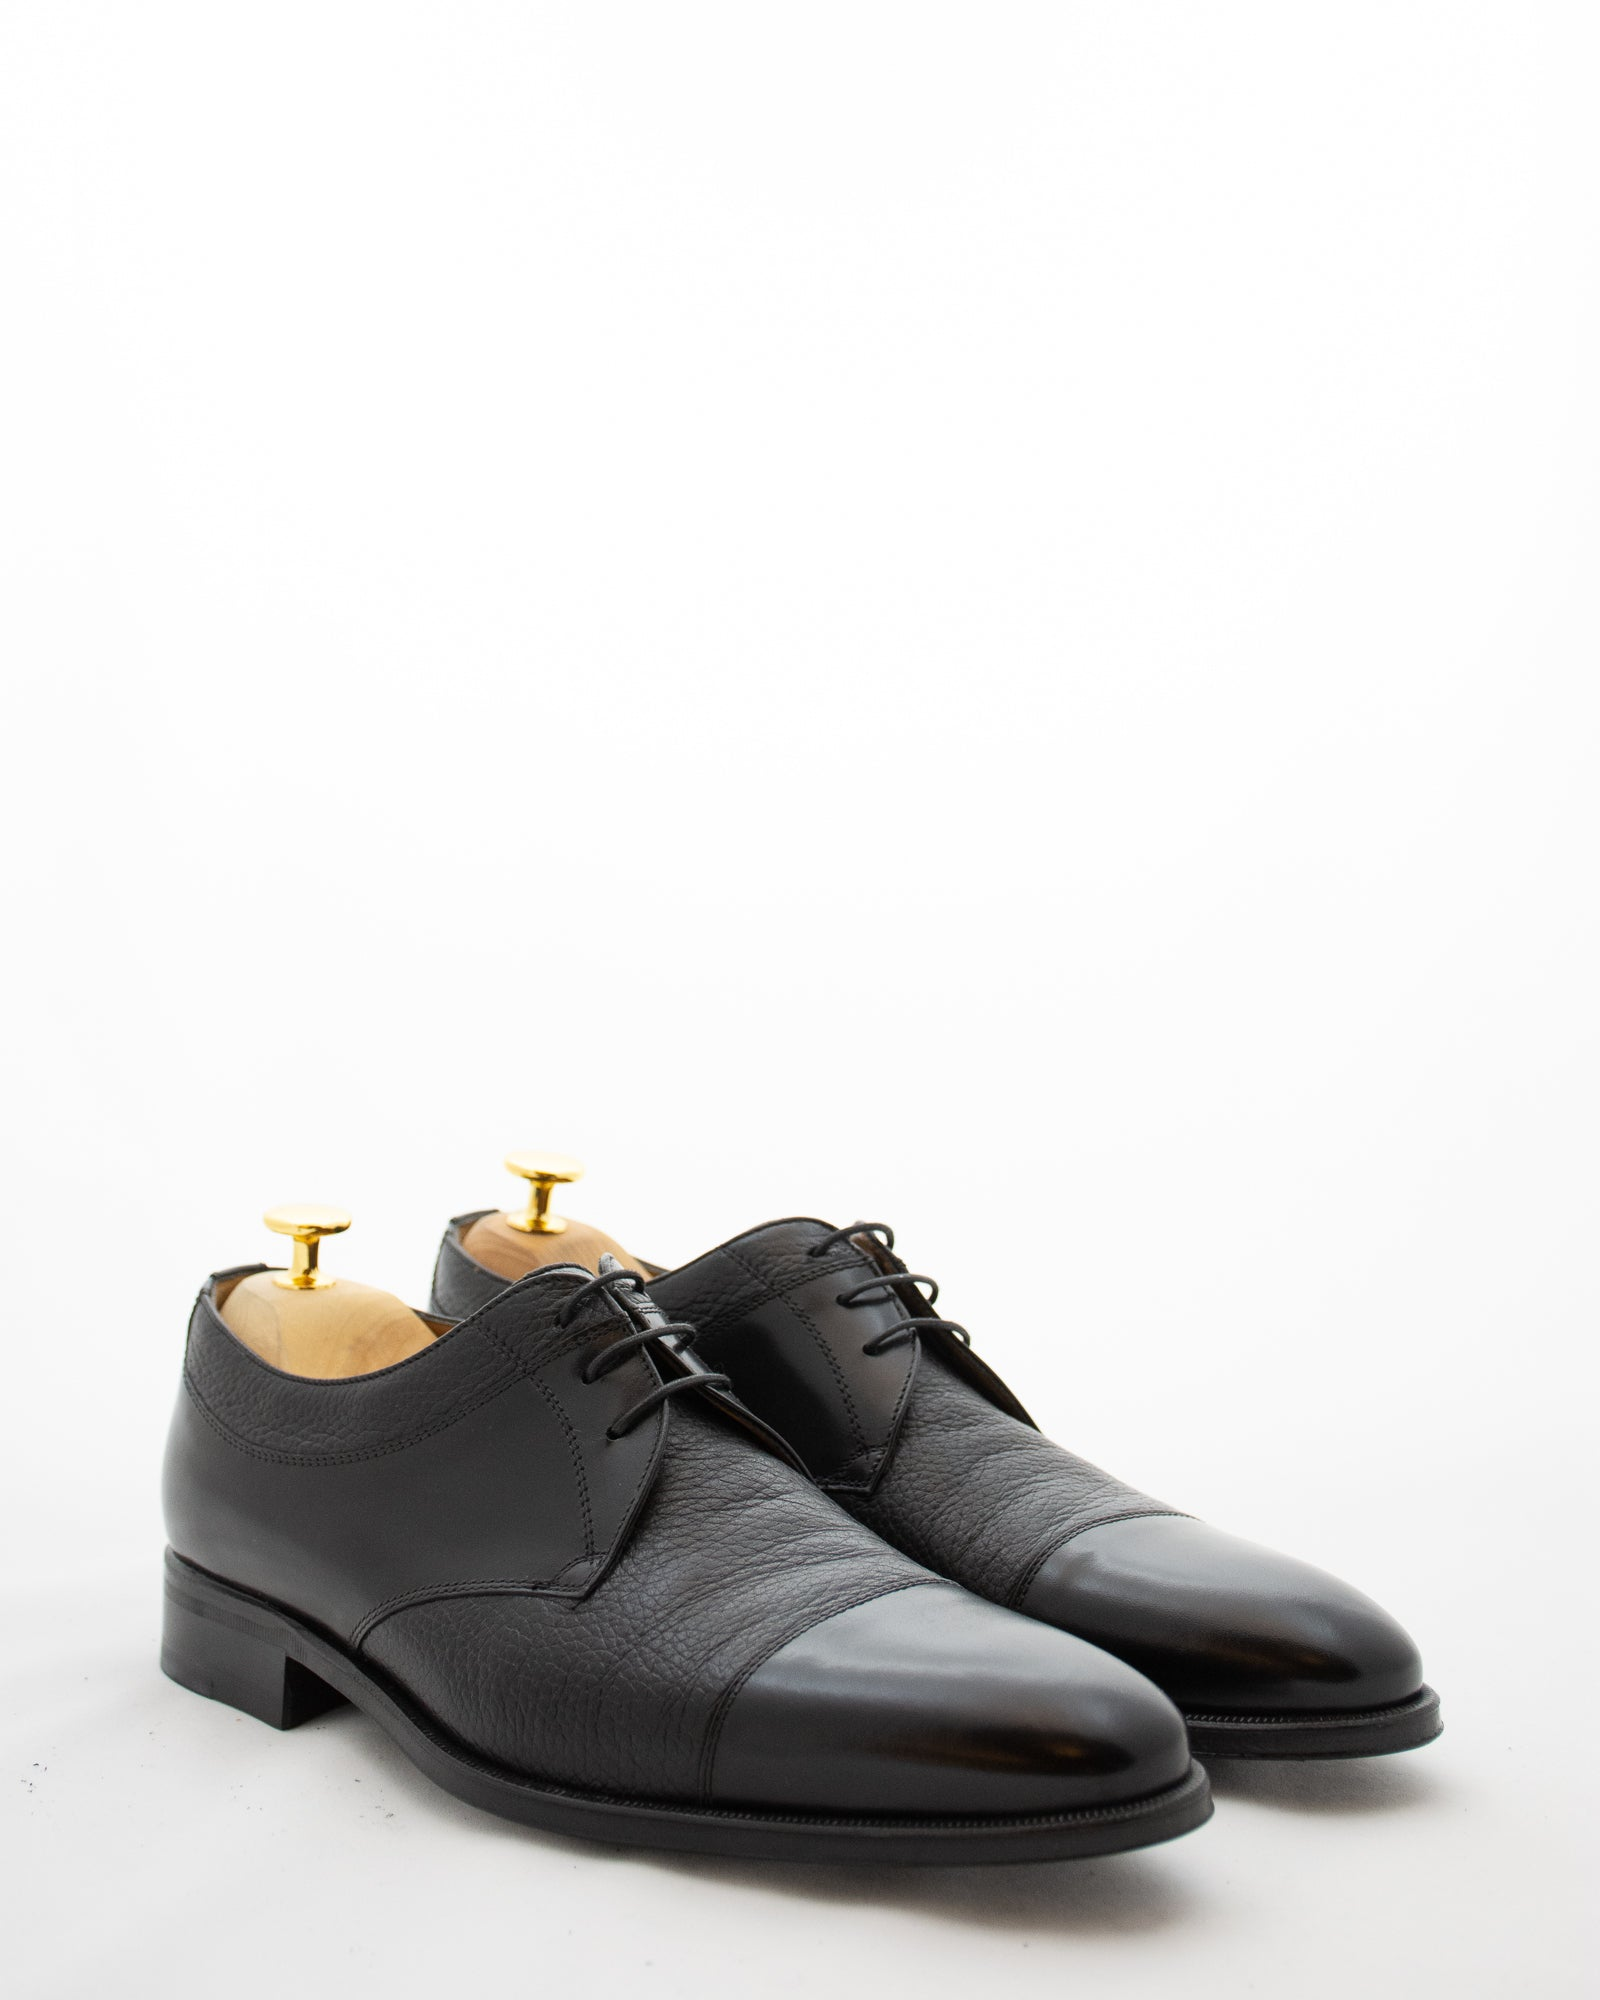 STEMAR Deer Skin Paneled Lace Up